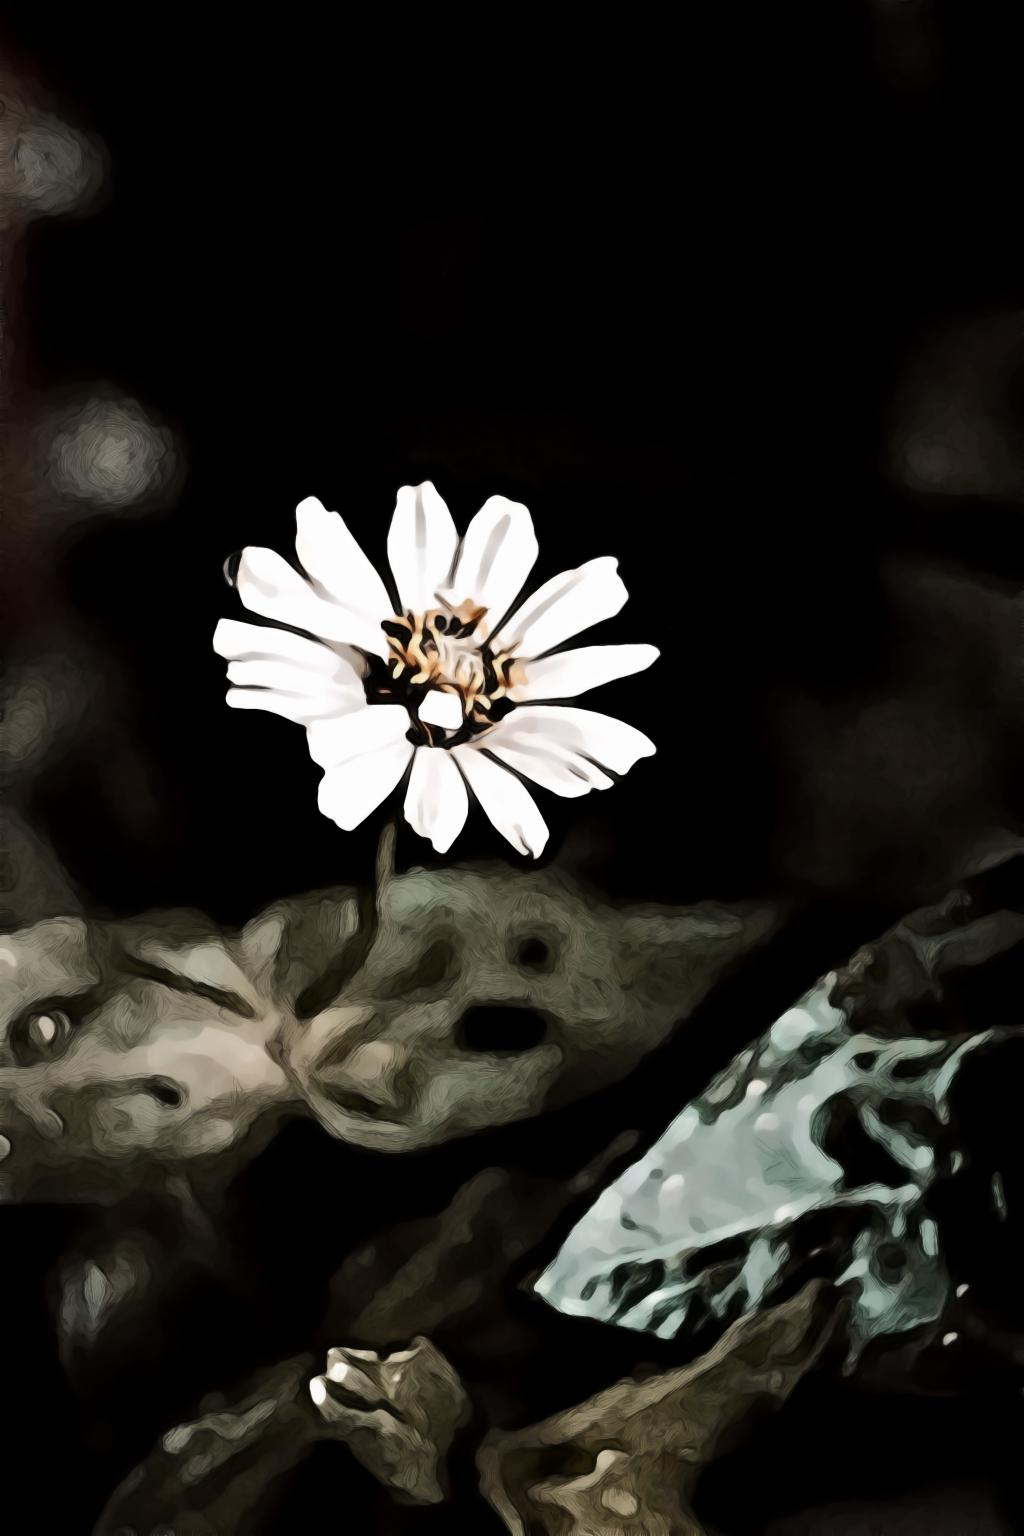 White petaled flower in selective focus photography